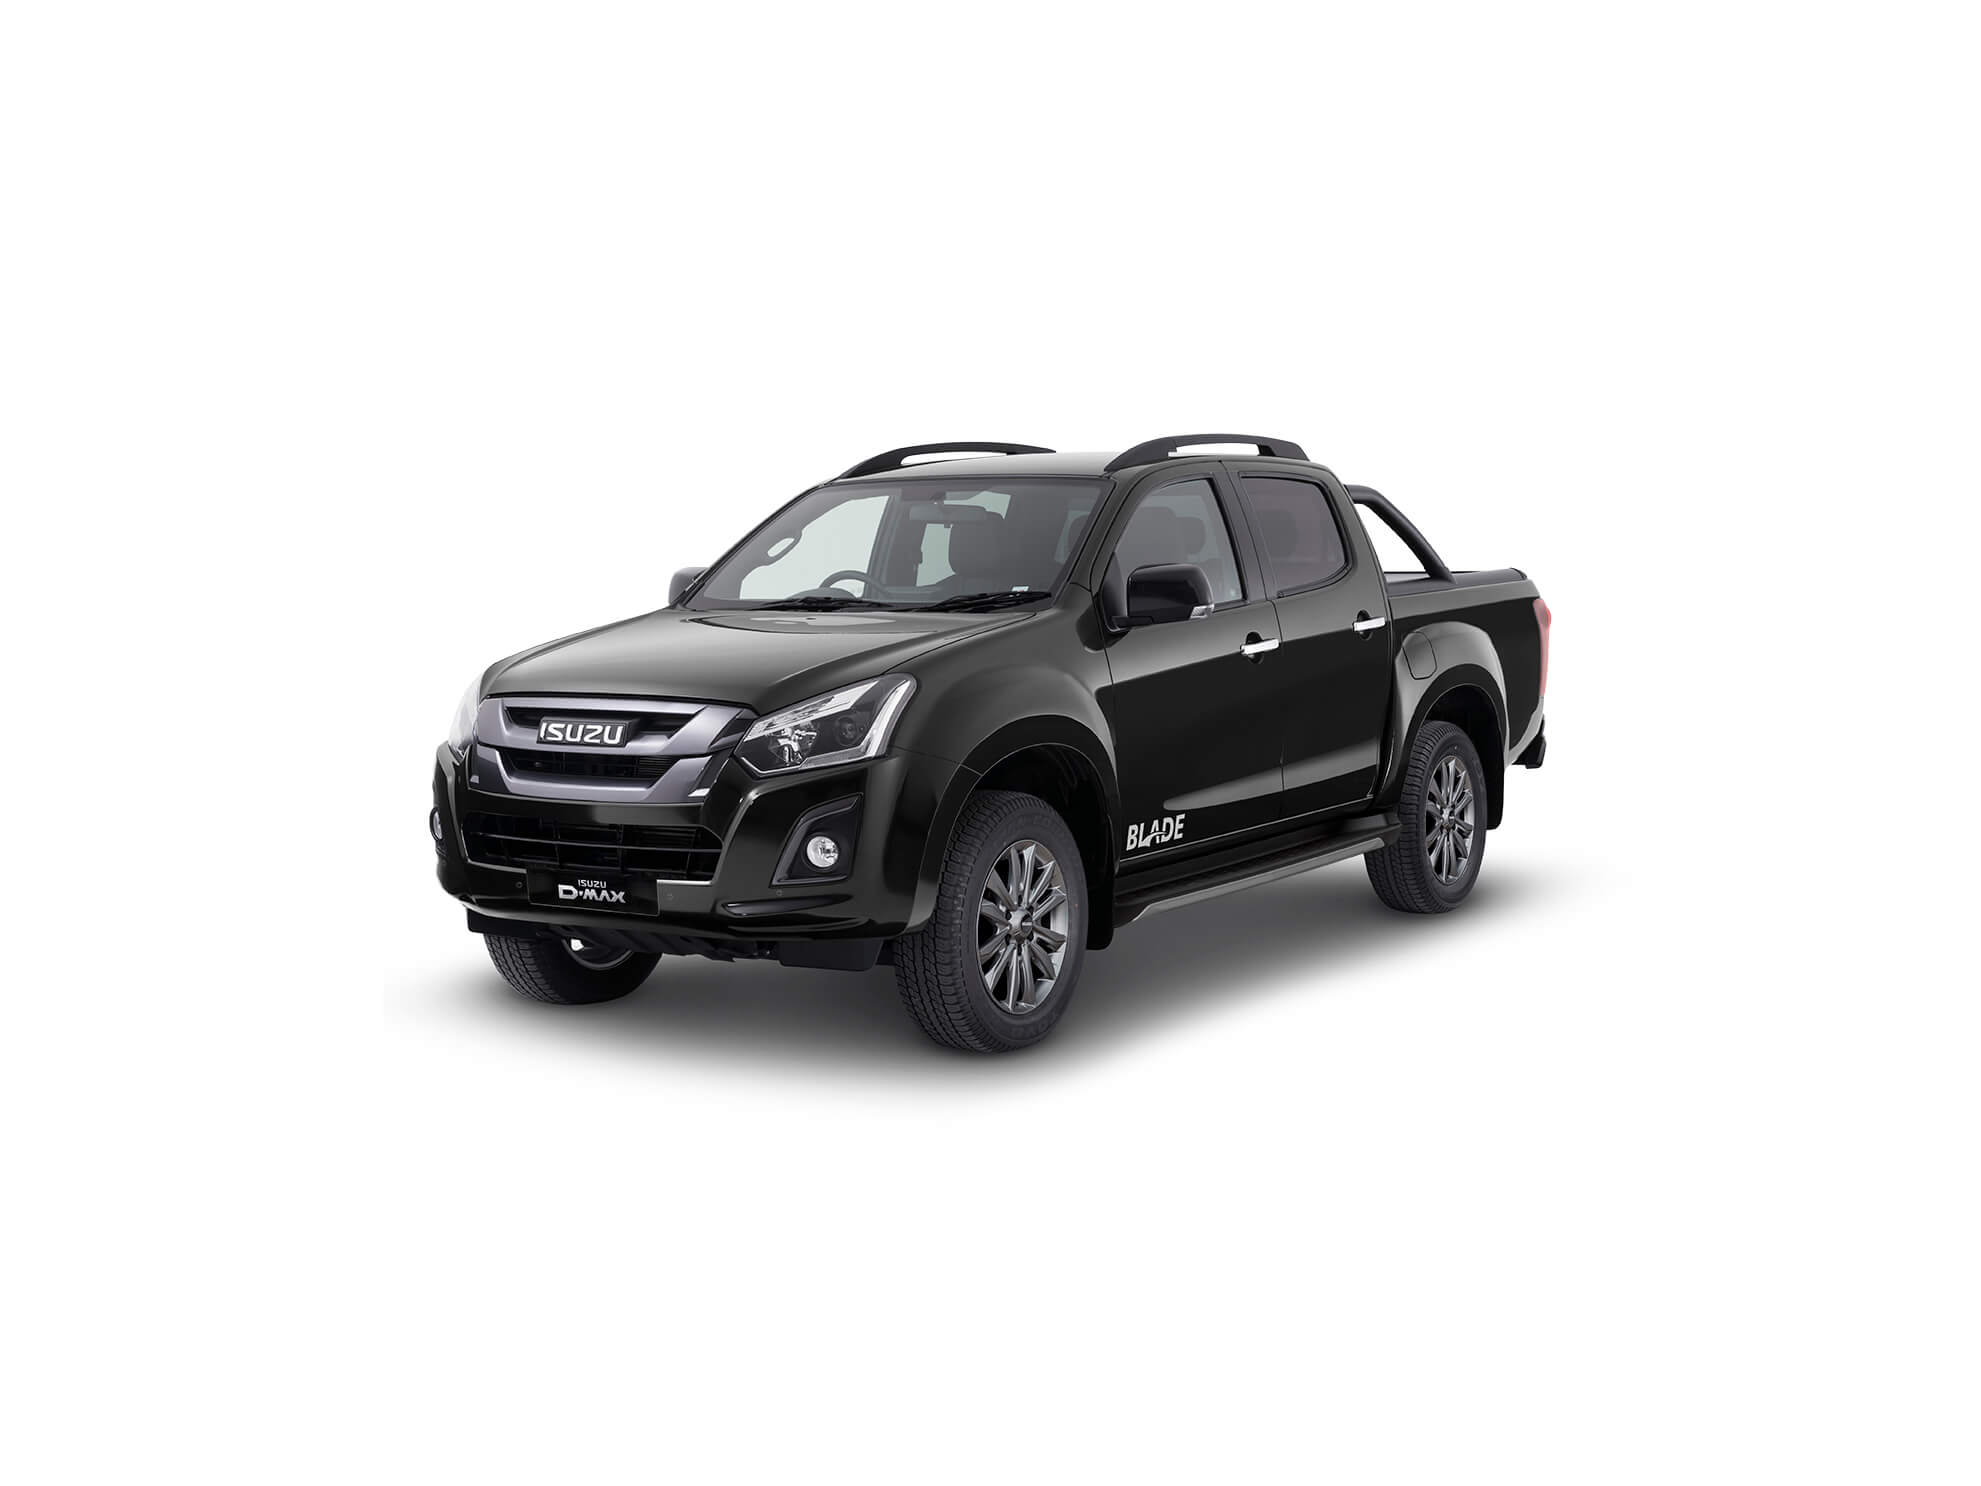 Front view of the Isuzu D-Max Blade in black